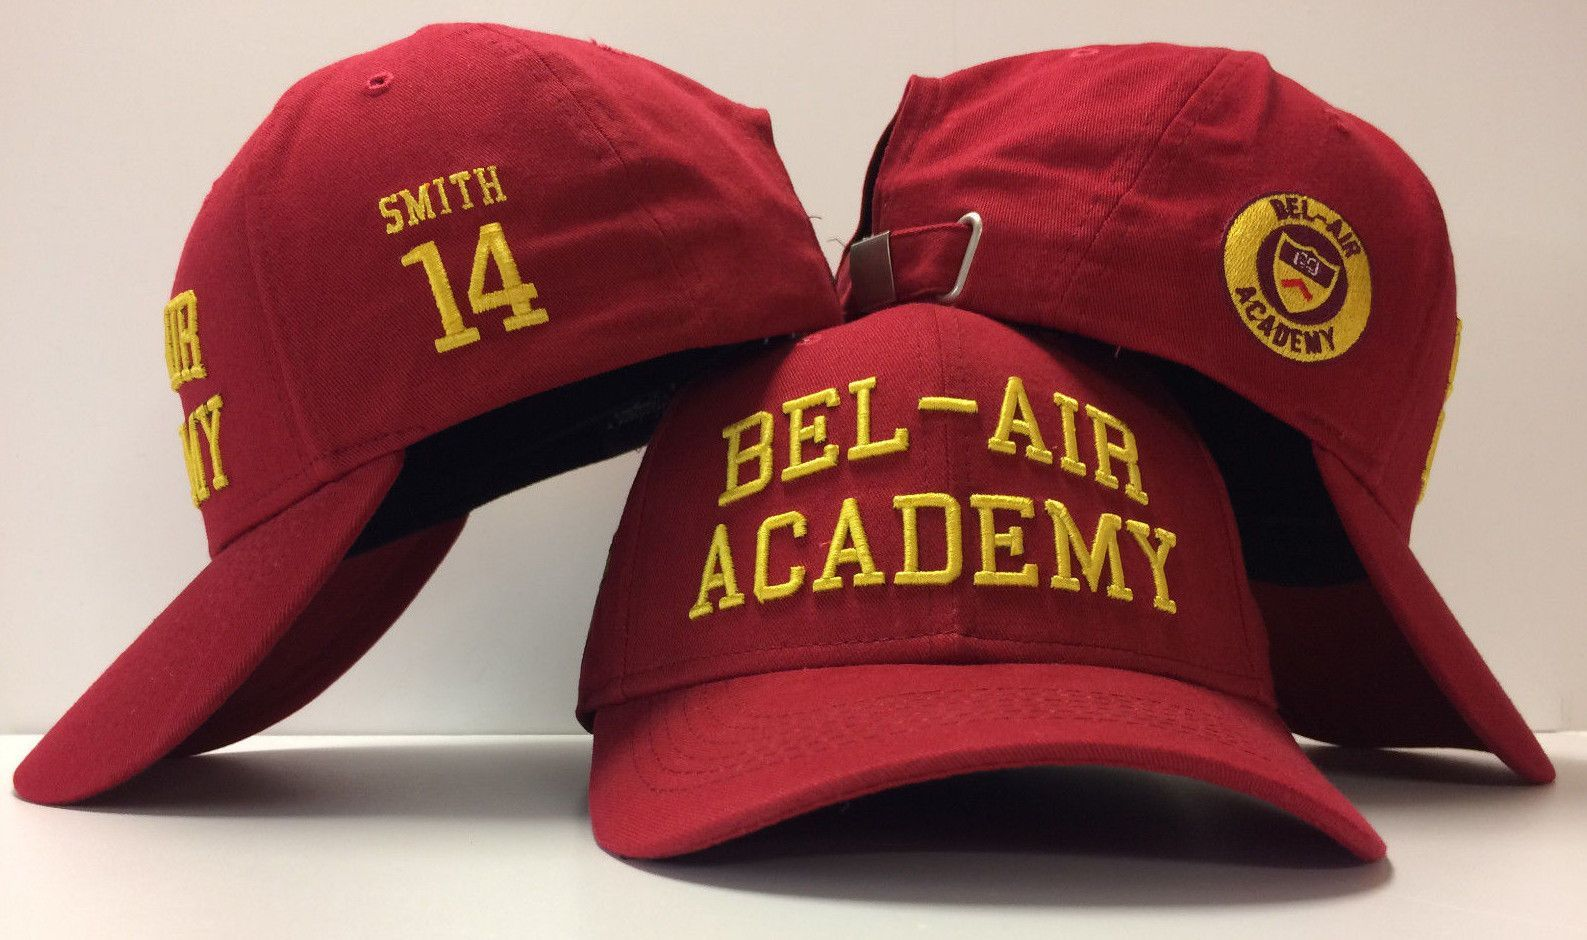 76f05e05 Will Smith Fresh Prince Of Bel-Air Academy #14 Adjustable Strapback Hat Dad  Cap